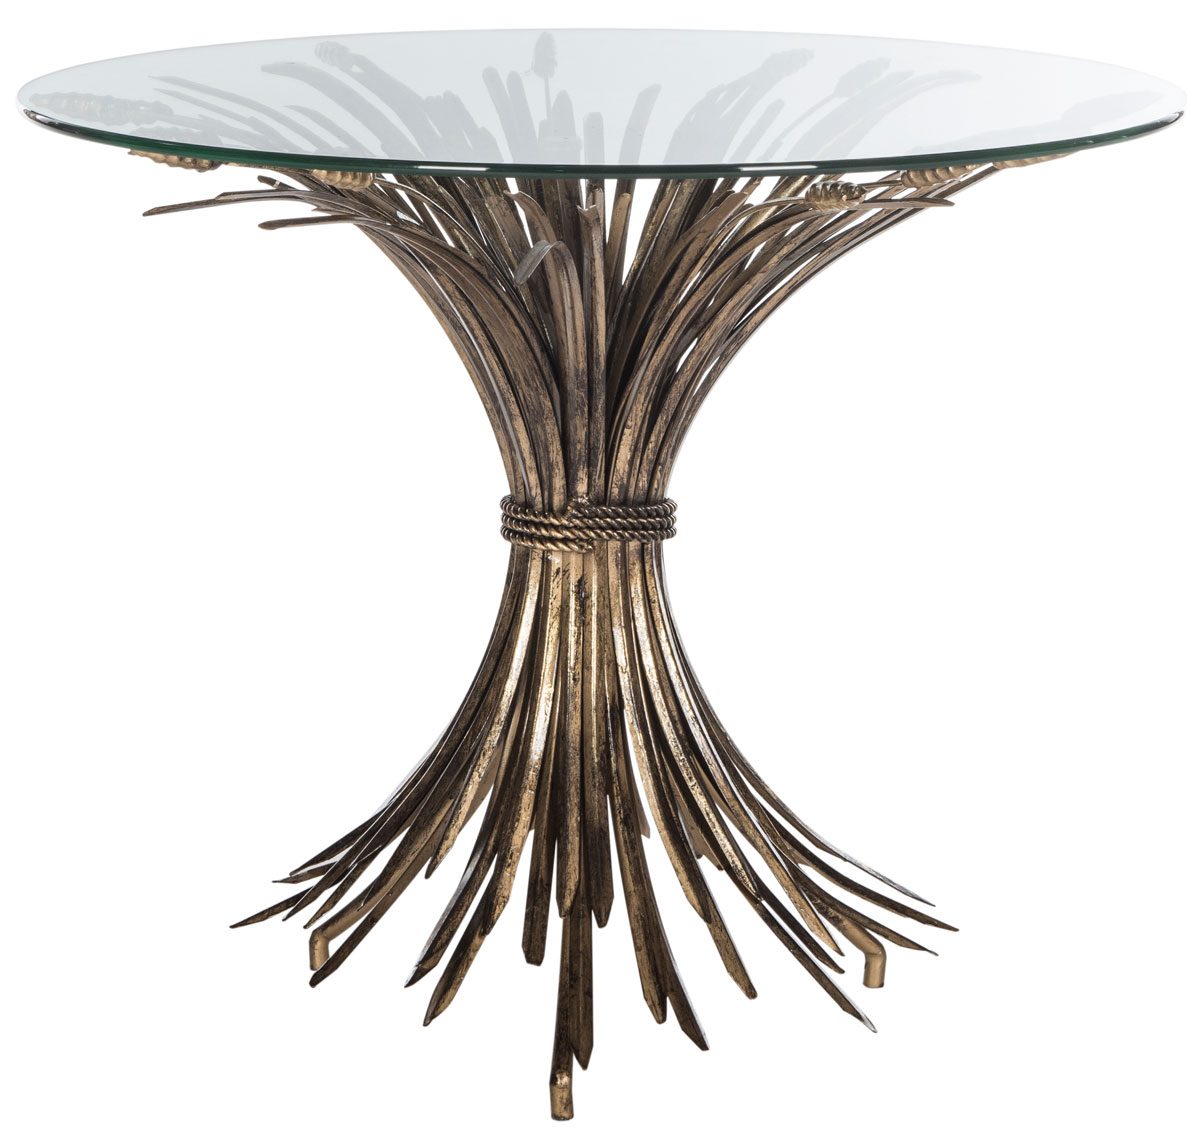 accent tables glass end table safavieh living room share this product runner for round pottery barn tabletop clear multi colored coffee modern furniture large oval nate berkus